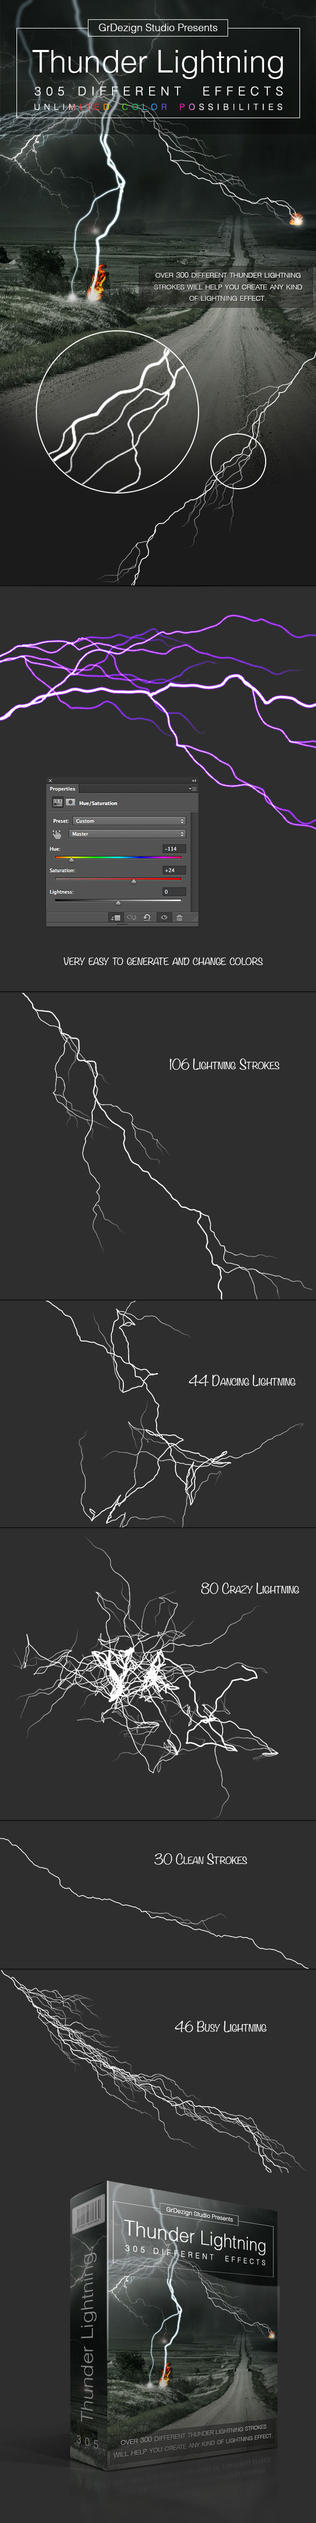 Thunder Lightning Effects by GrDezign